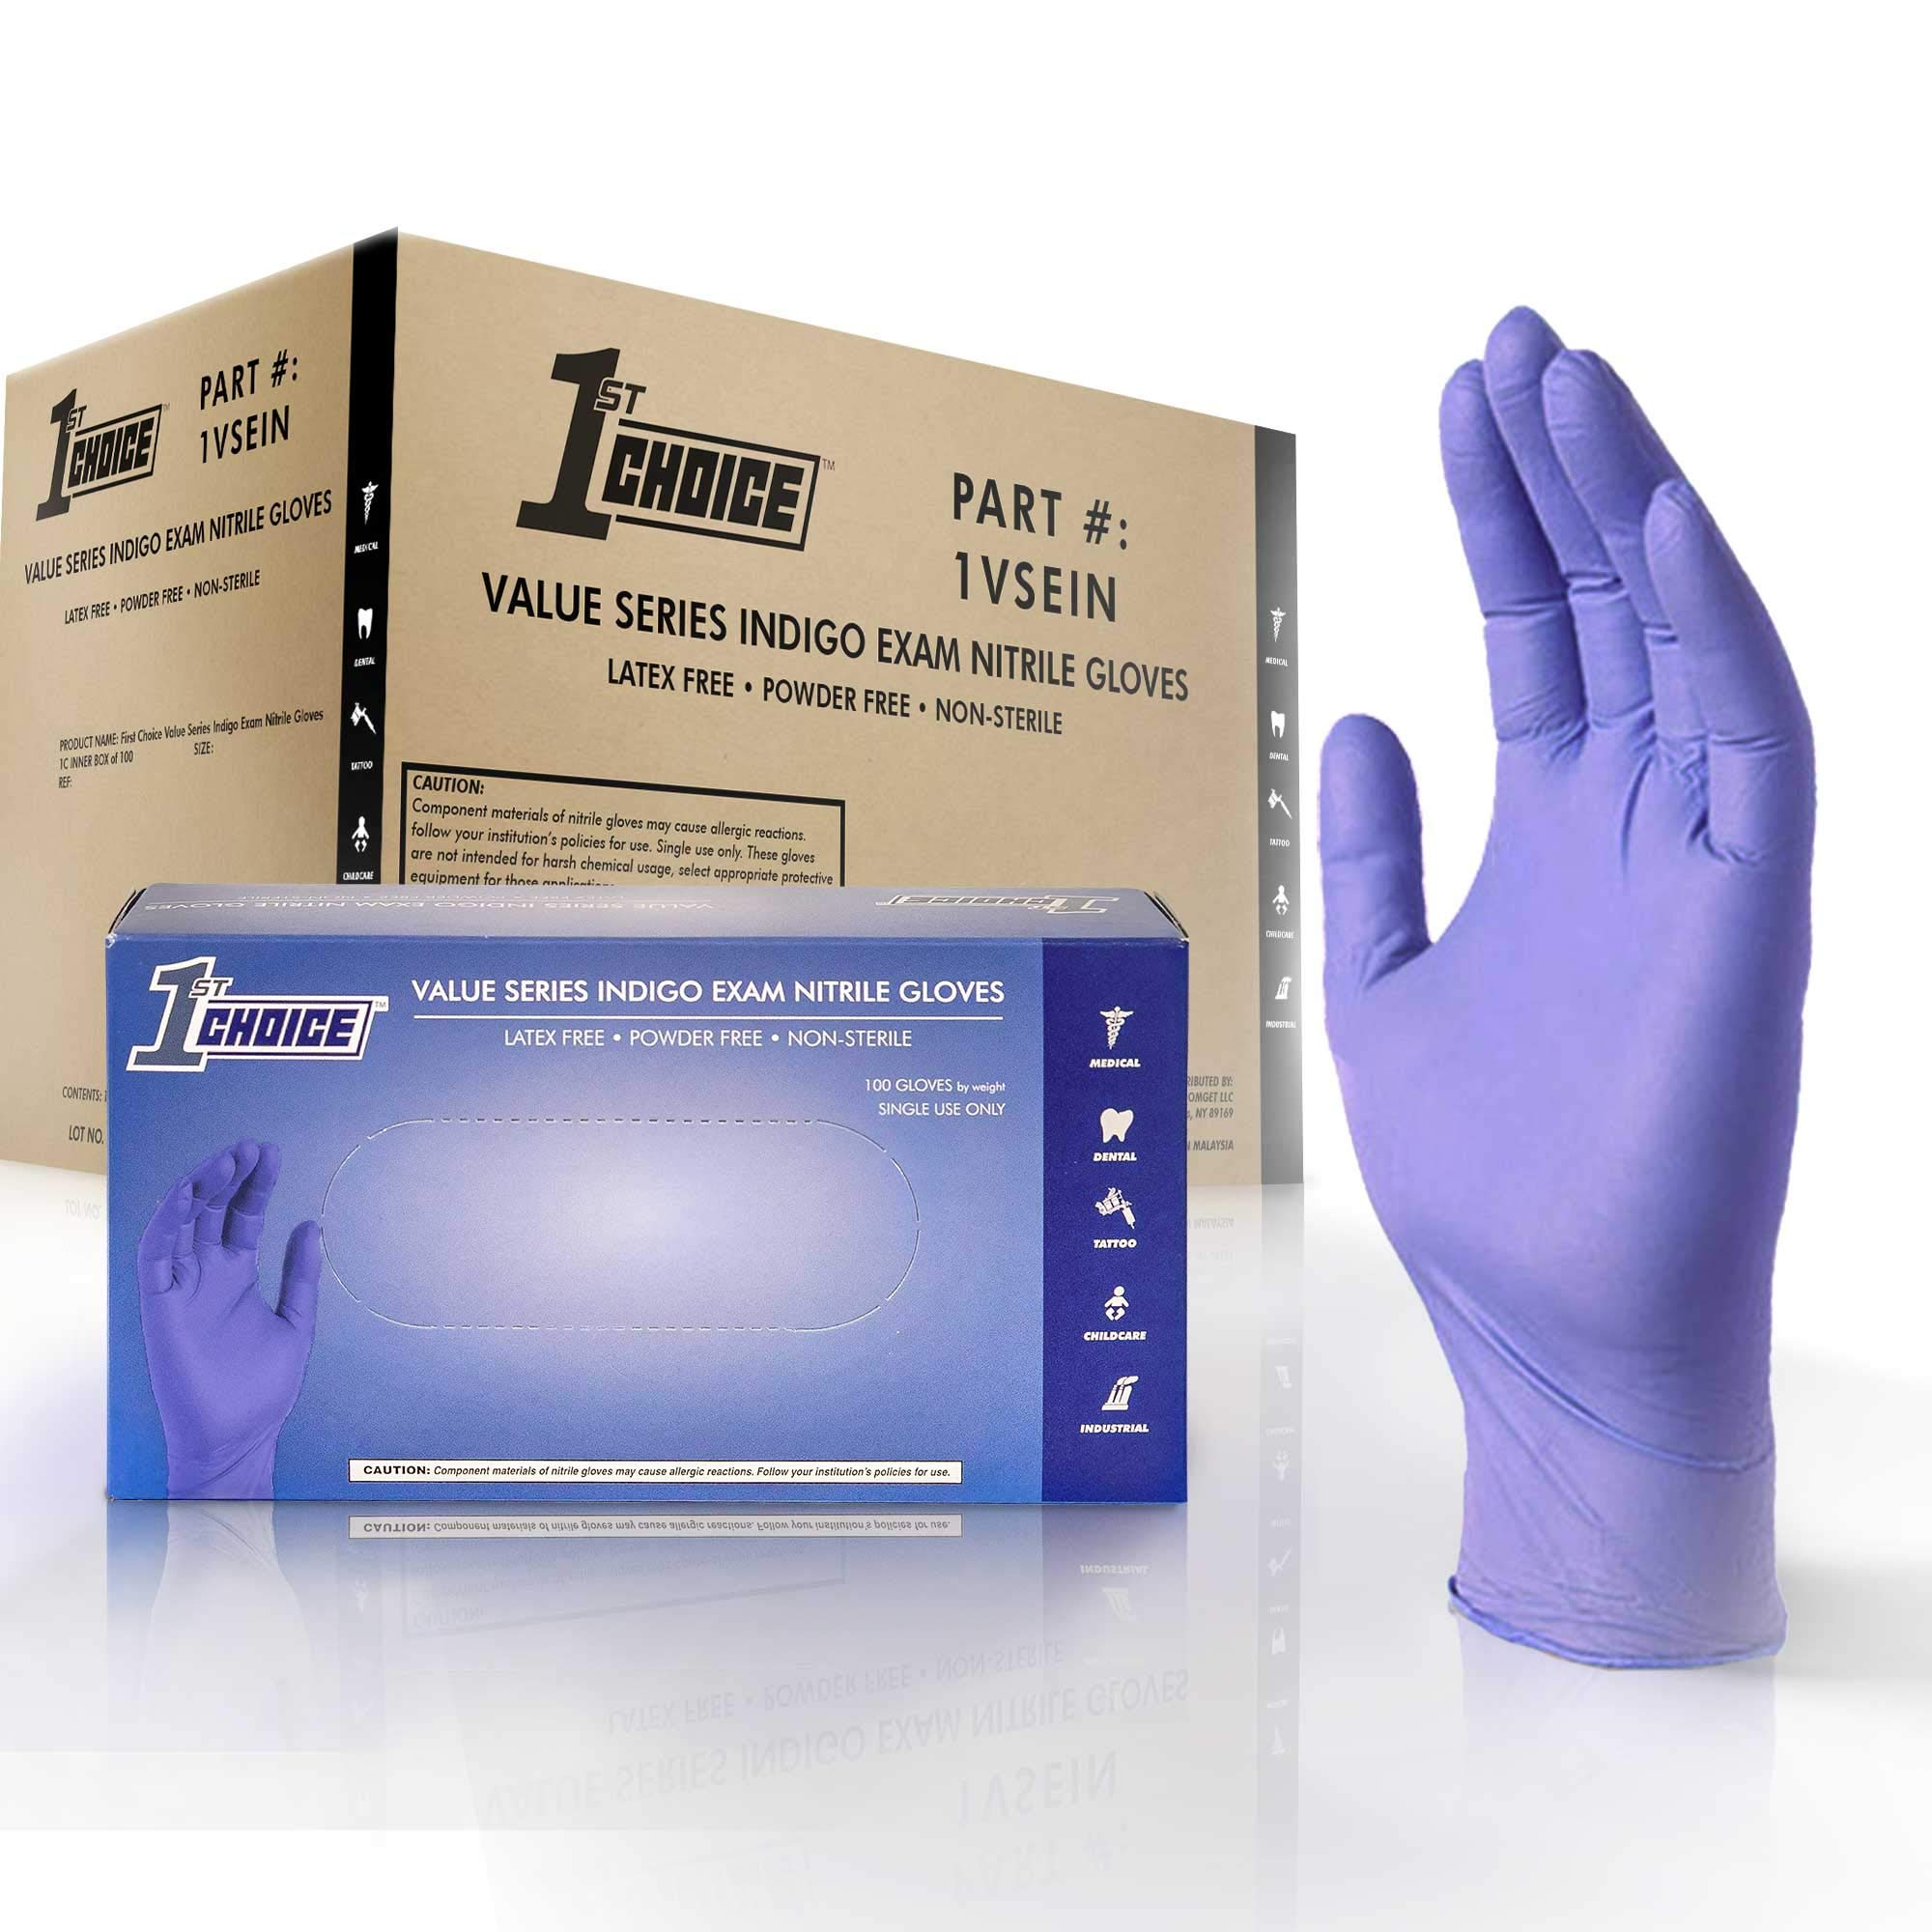 1st Choice Safety Light Indigo Nitrile 3.5 Mil Thick Disposable Gloves, Case of 1000 - Exam/Medical, Latex-Free, Value Series